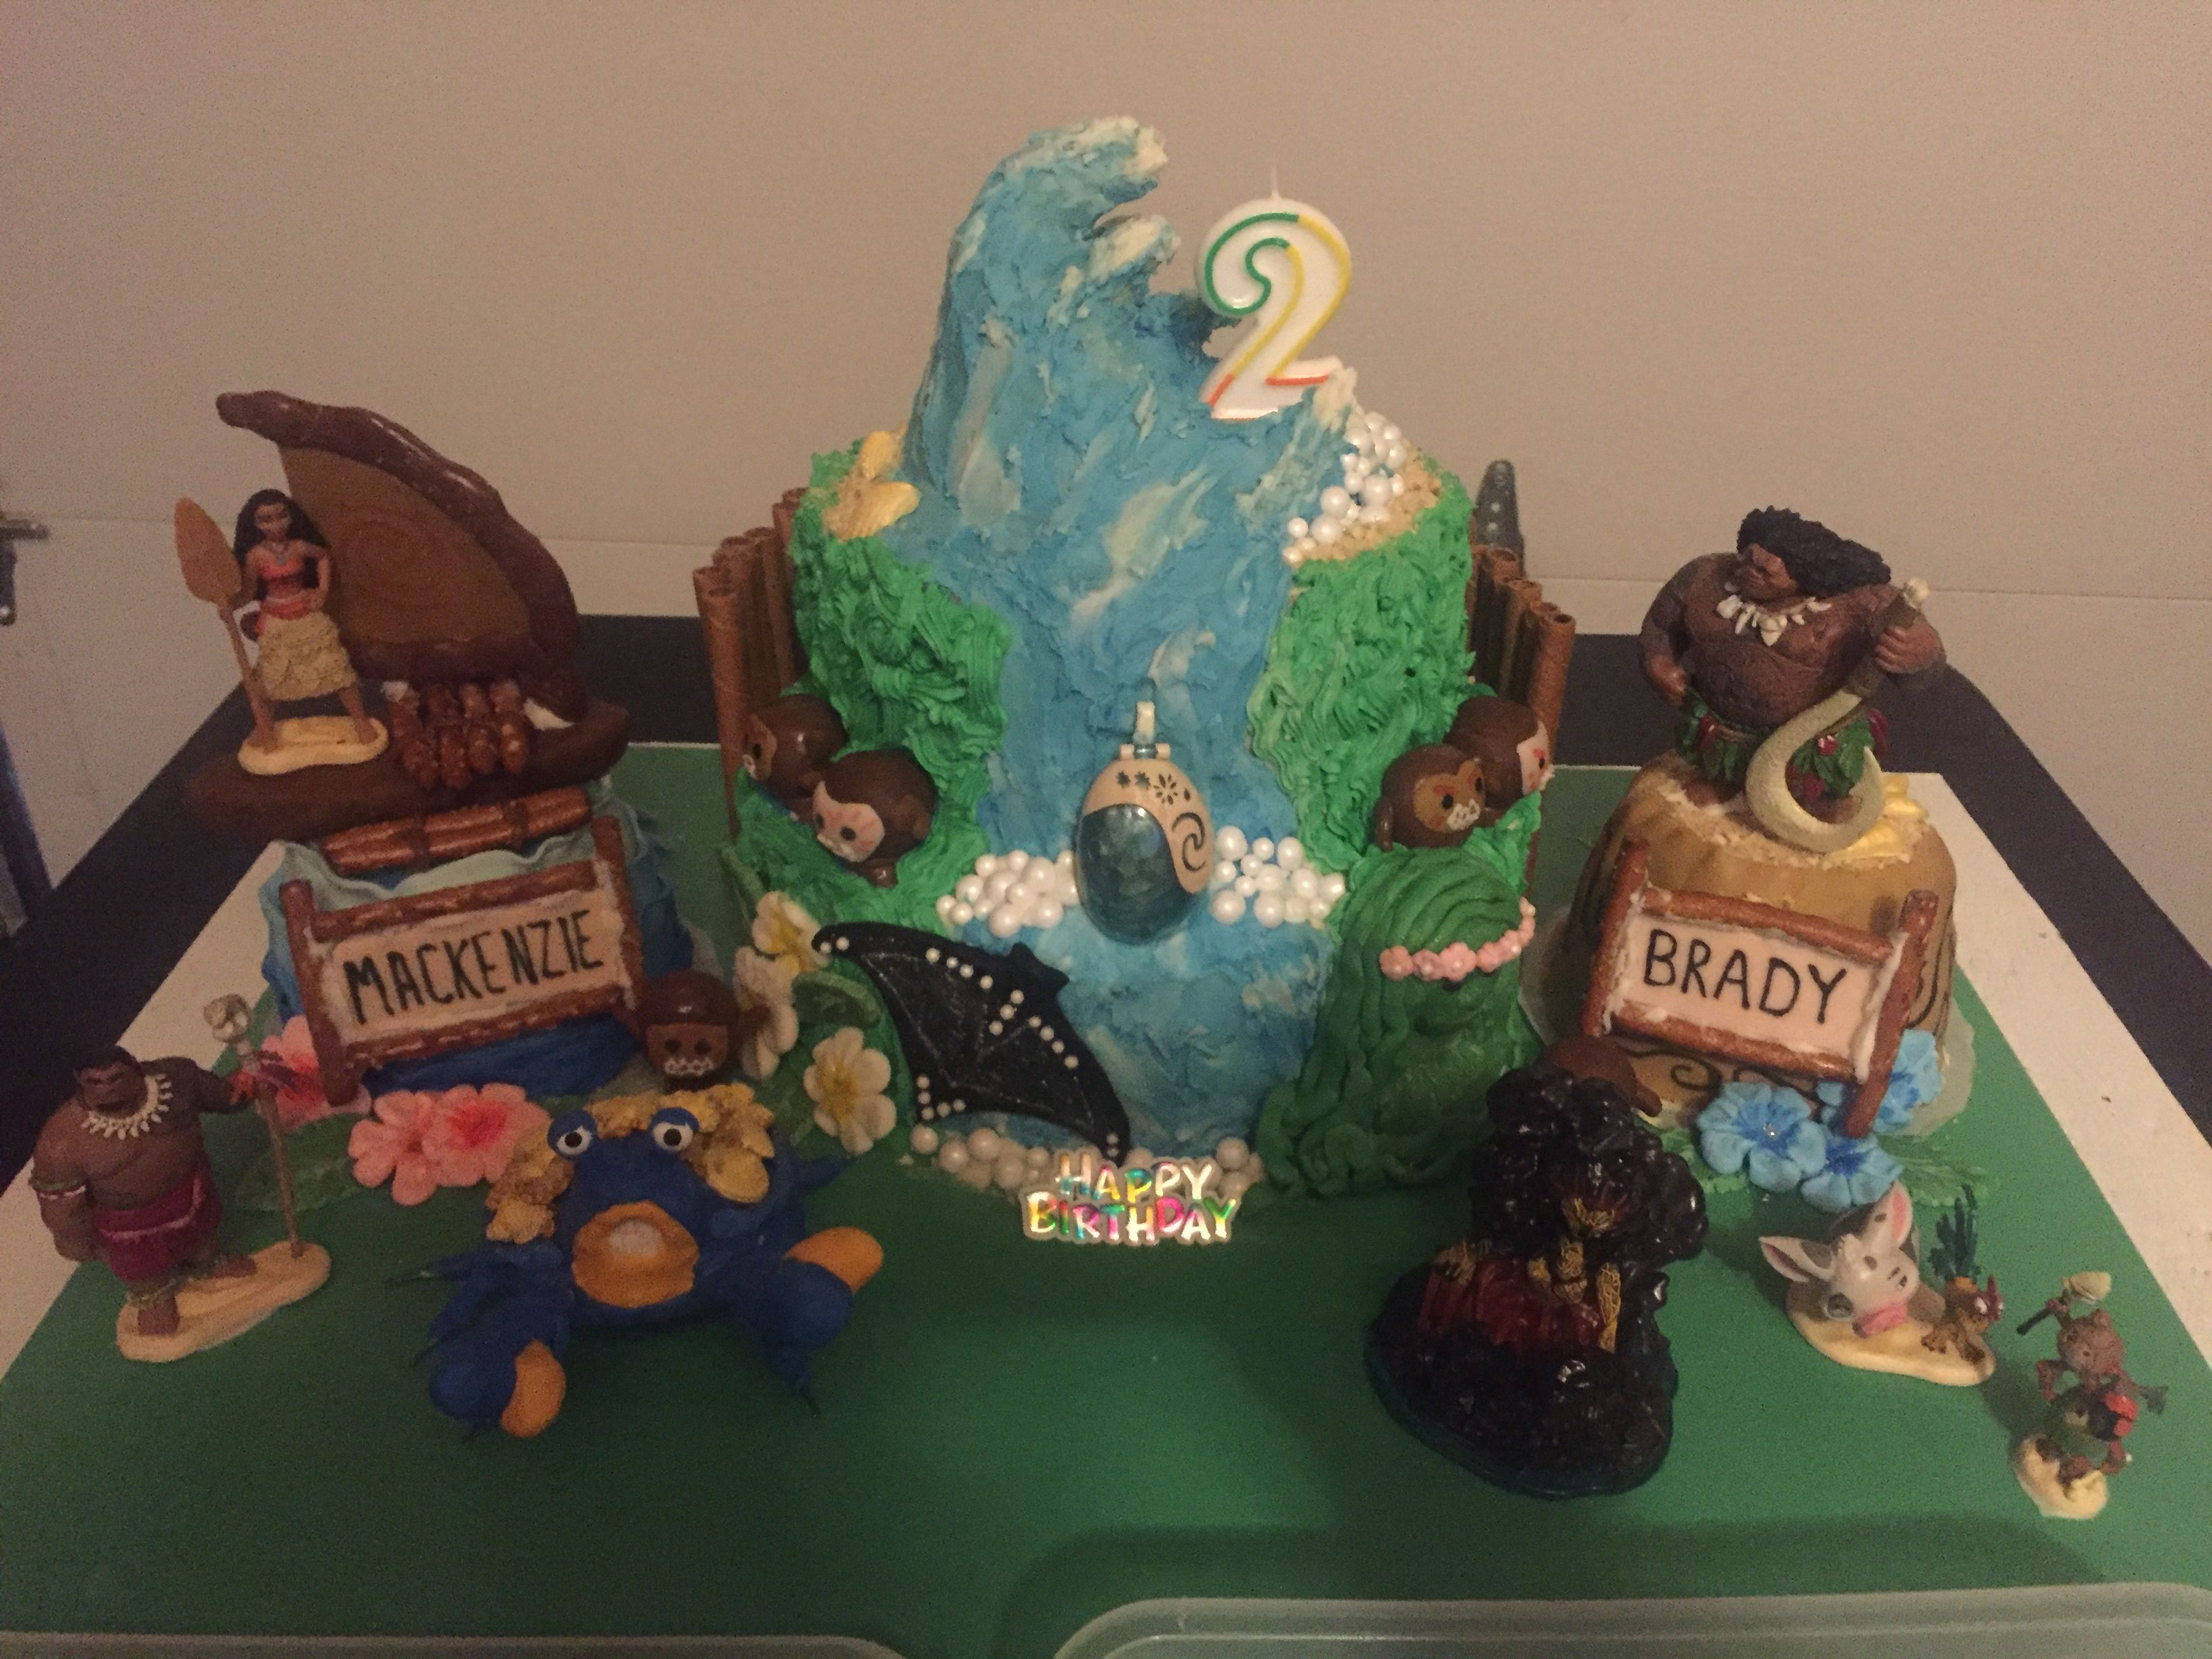 Moana And Maui Birthday Cake For Twin Grand Kids Thanks For All The